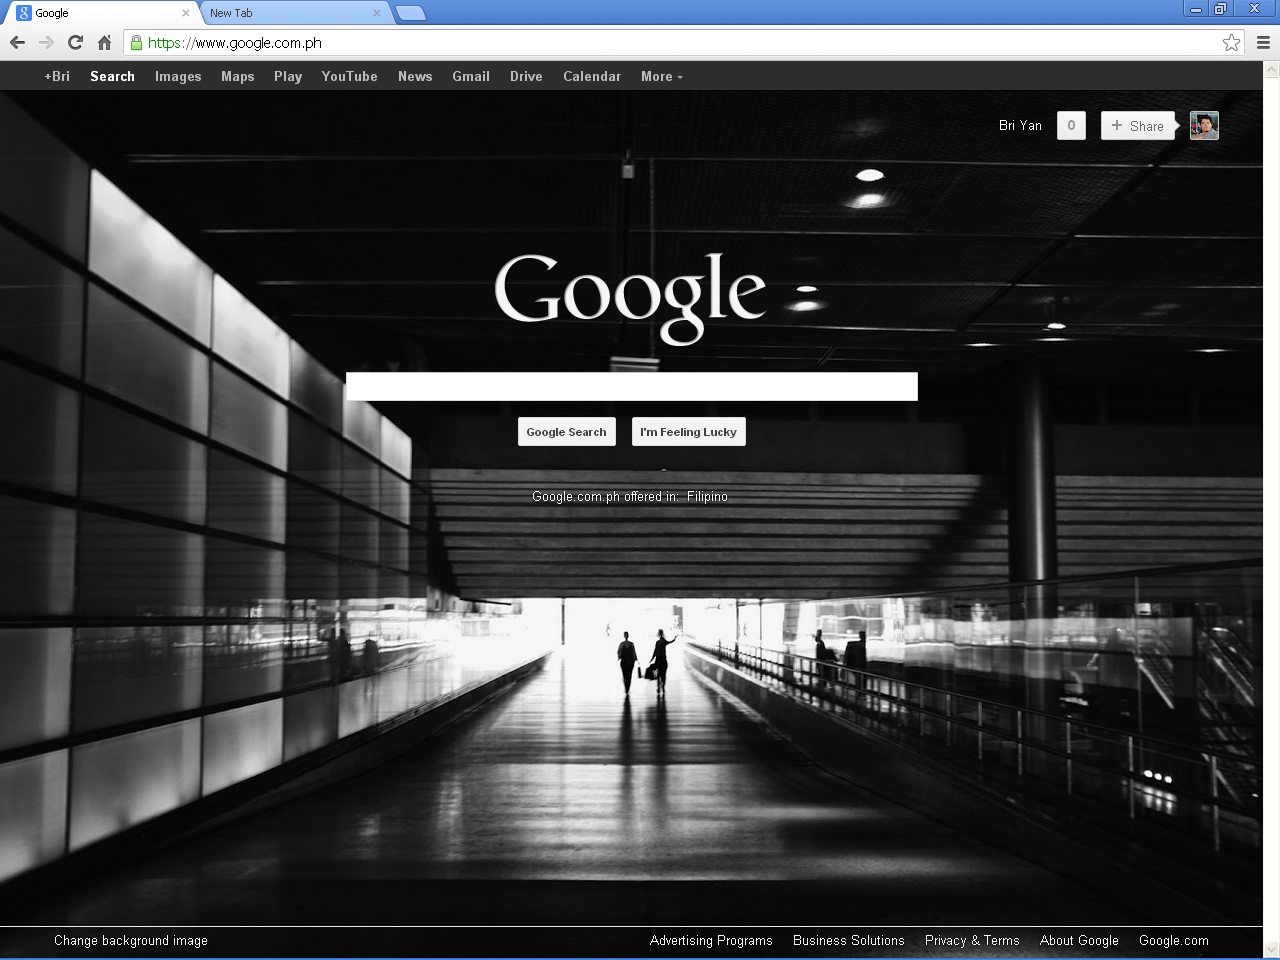 how to change google browser background image howtoquick net